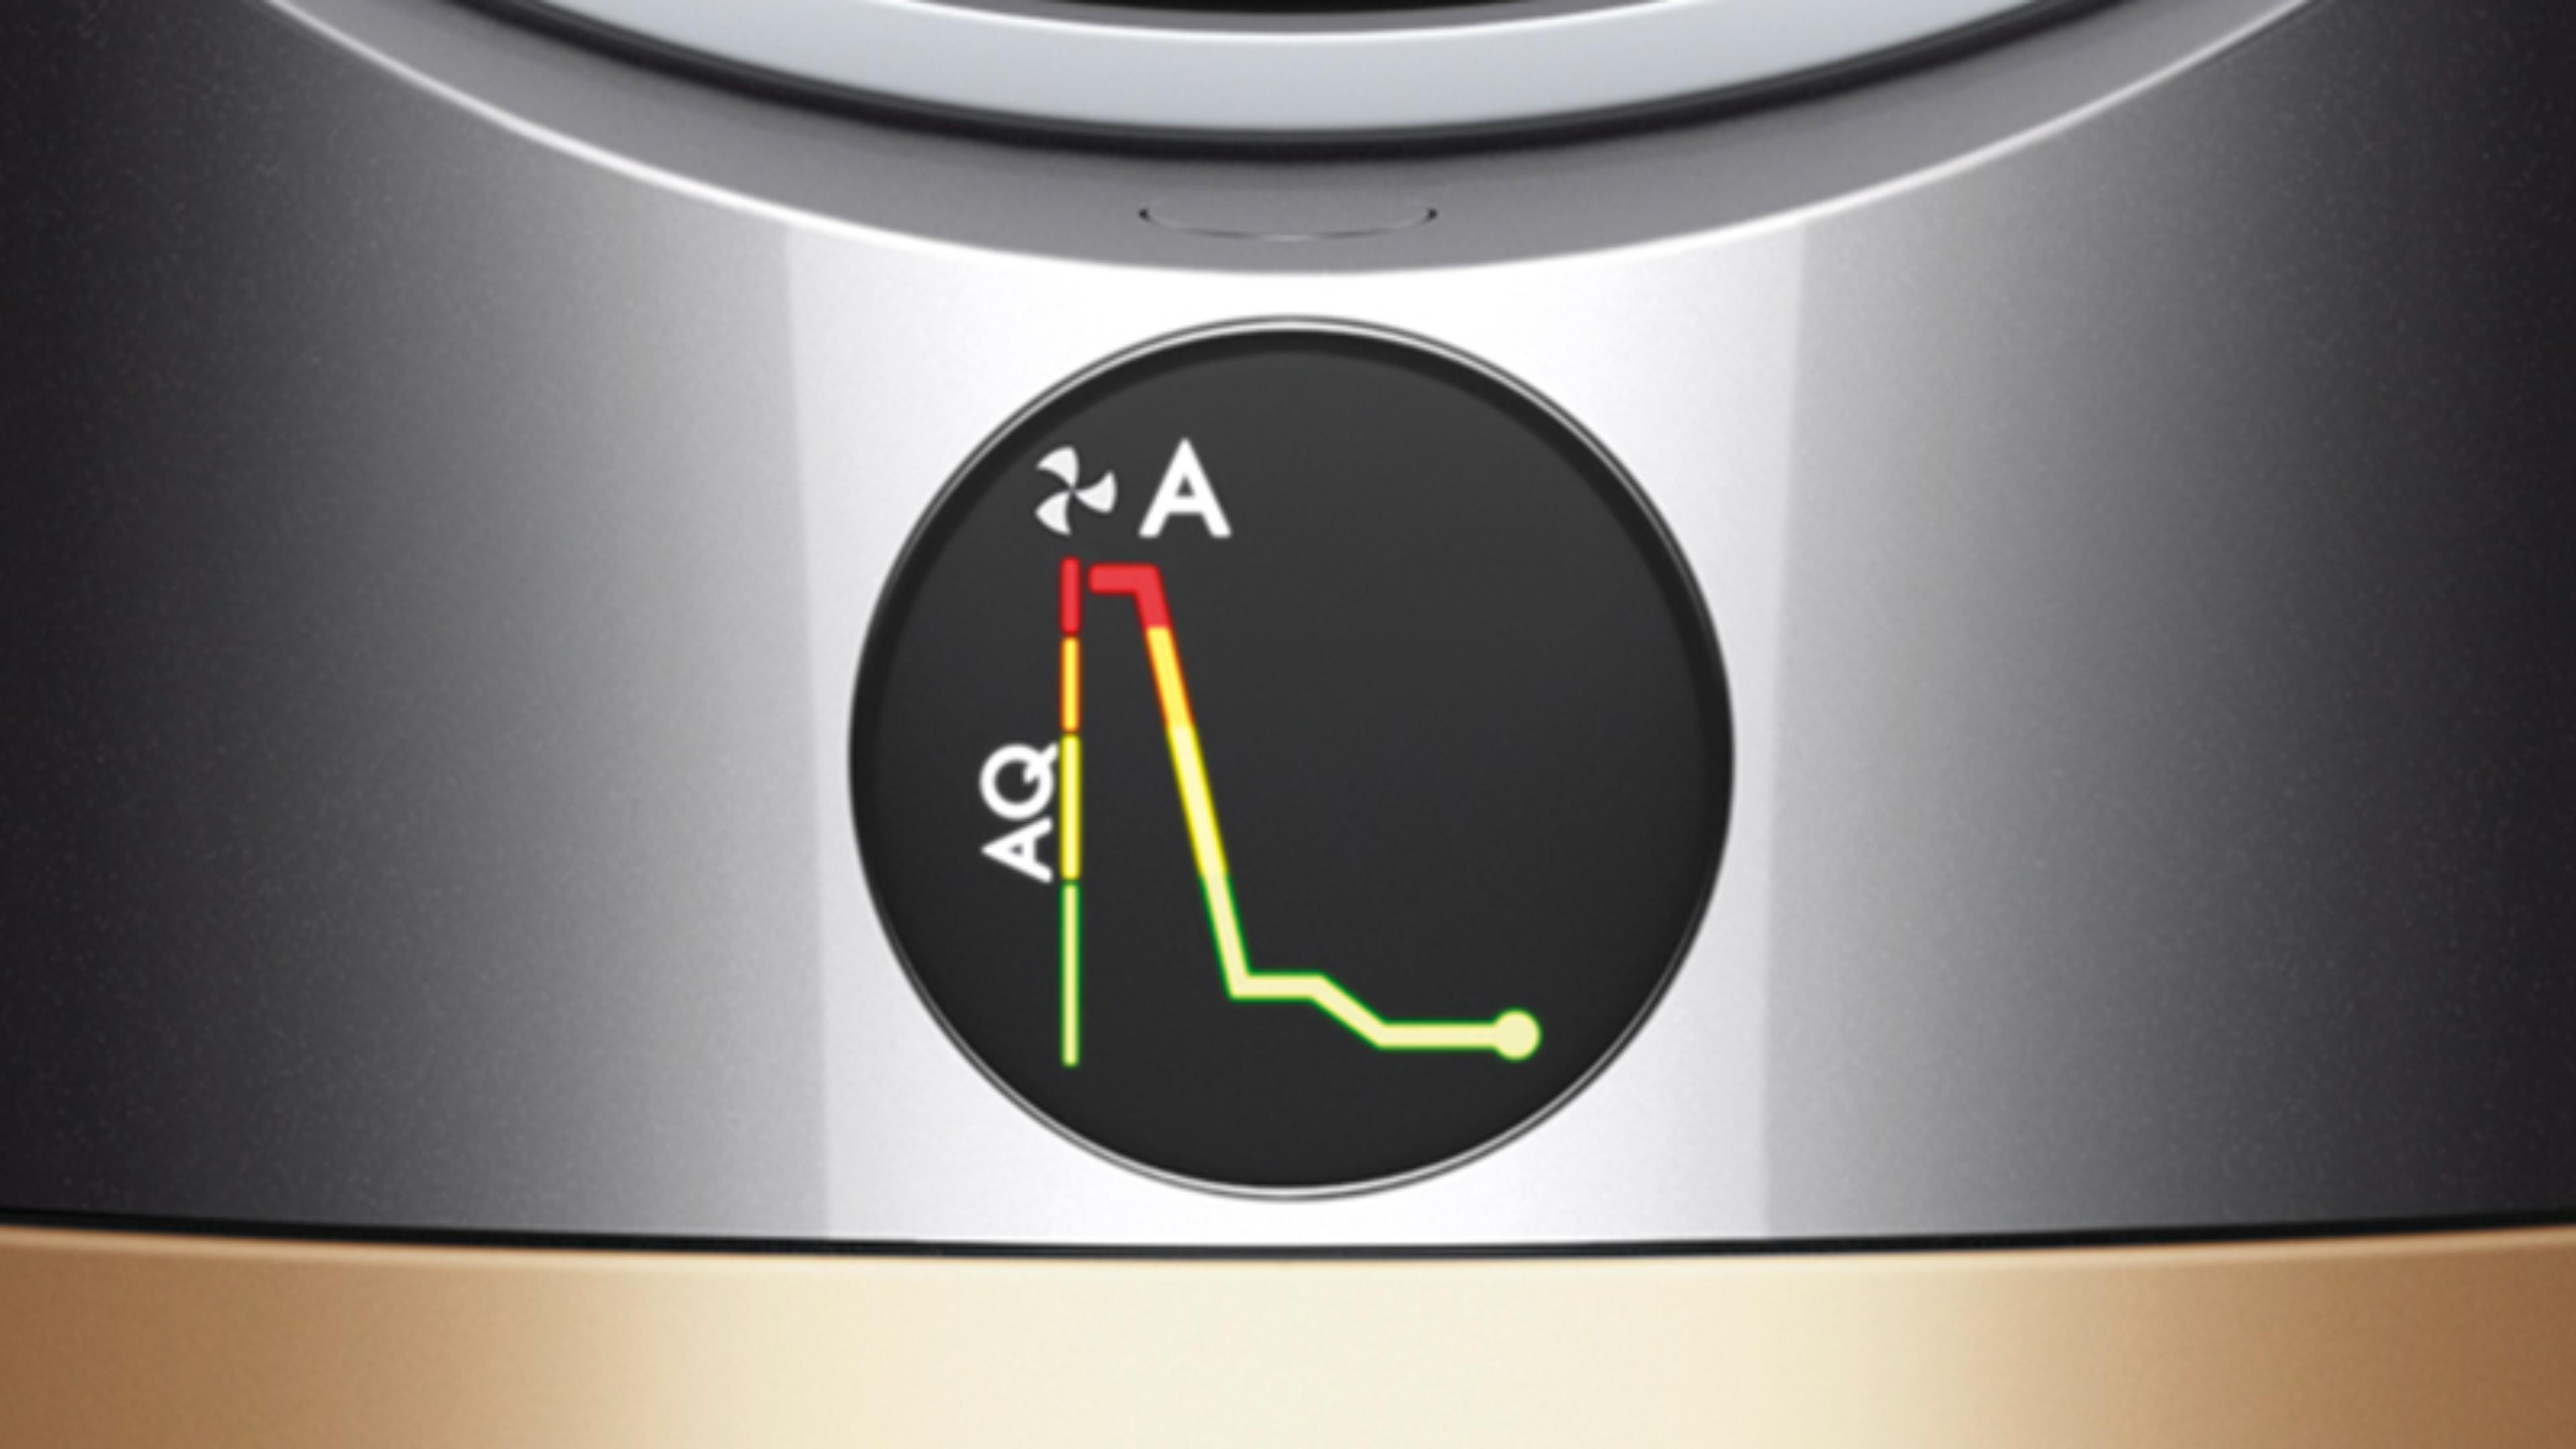 Dyson purifier LCD screen with graph to show pollutant levels